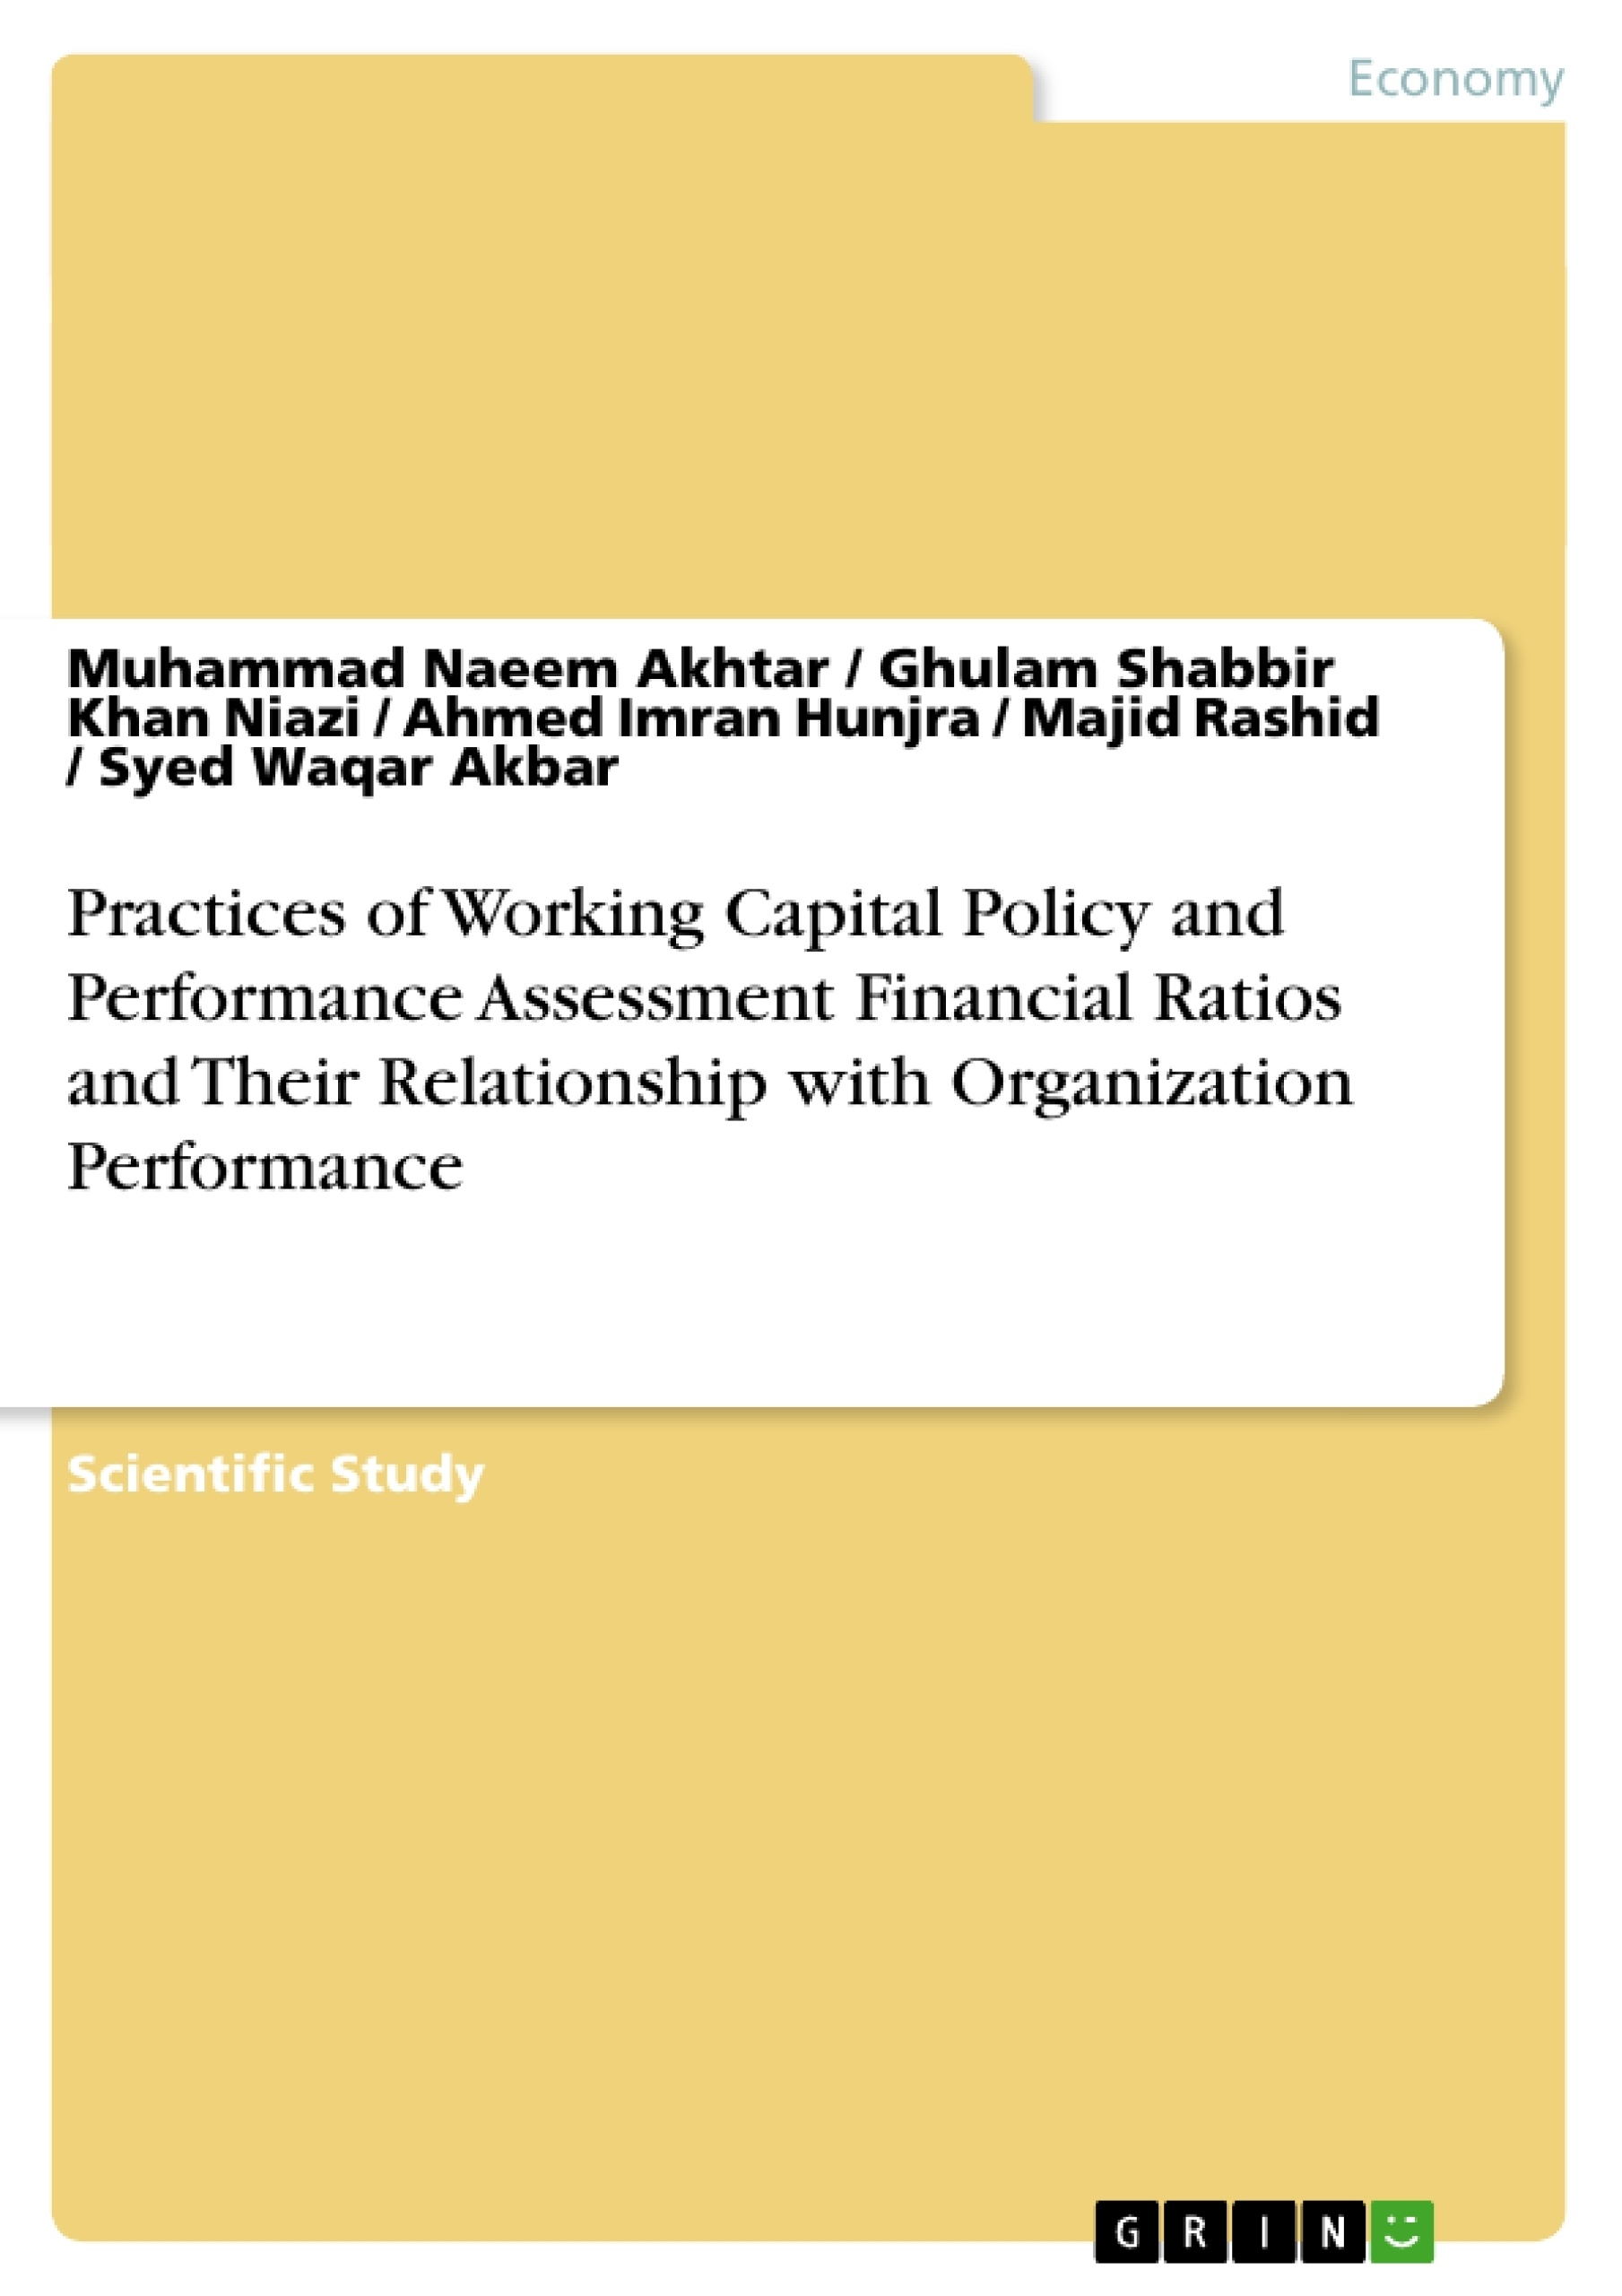 review of literature for working capital management